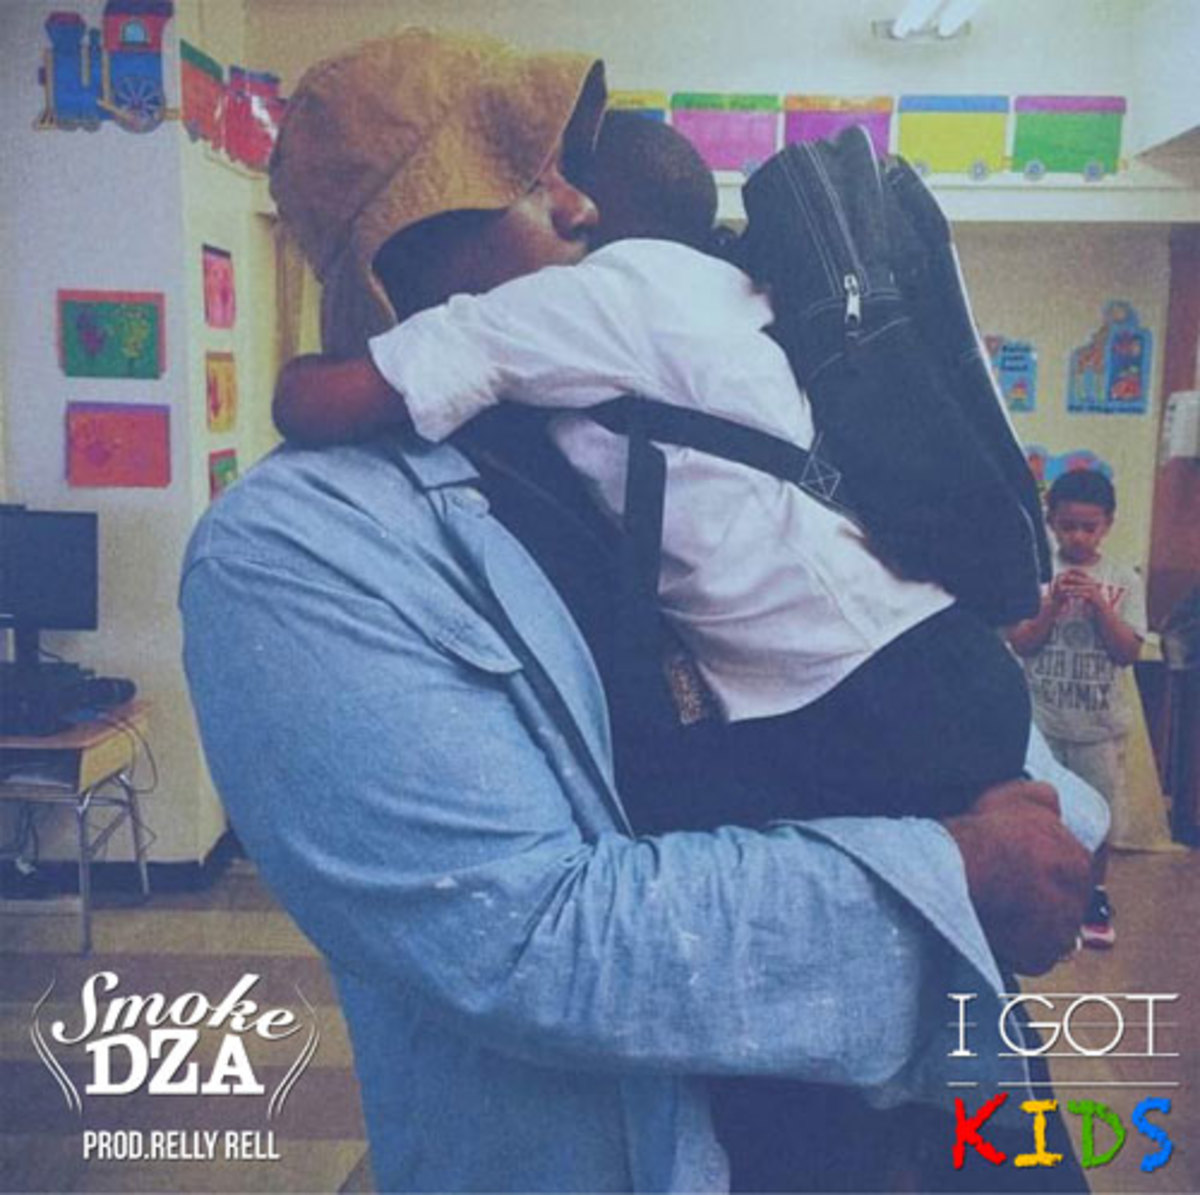 smoke-dza-i-got-kids.jpg